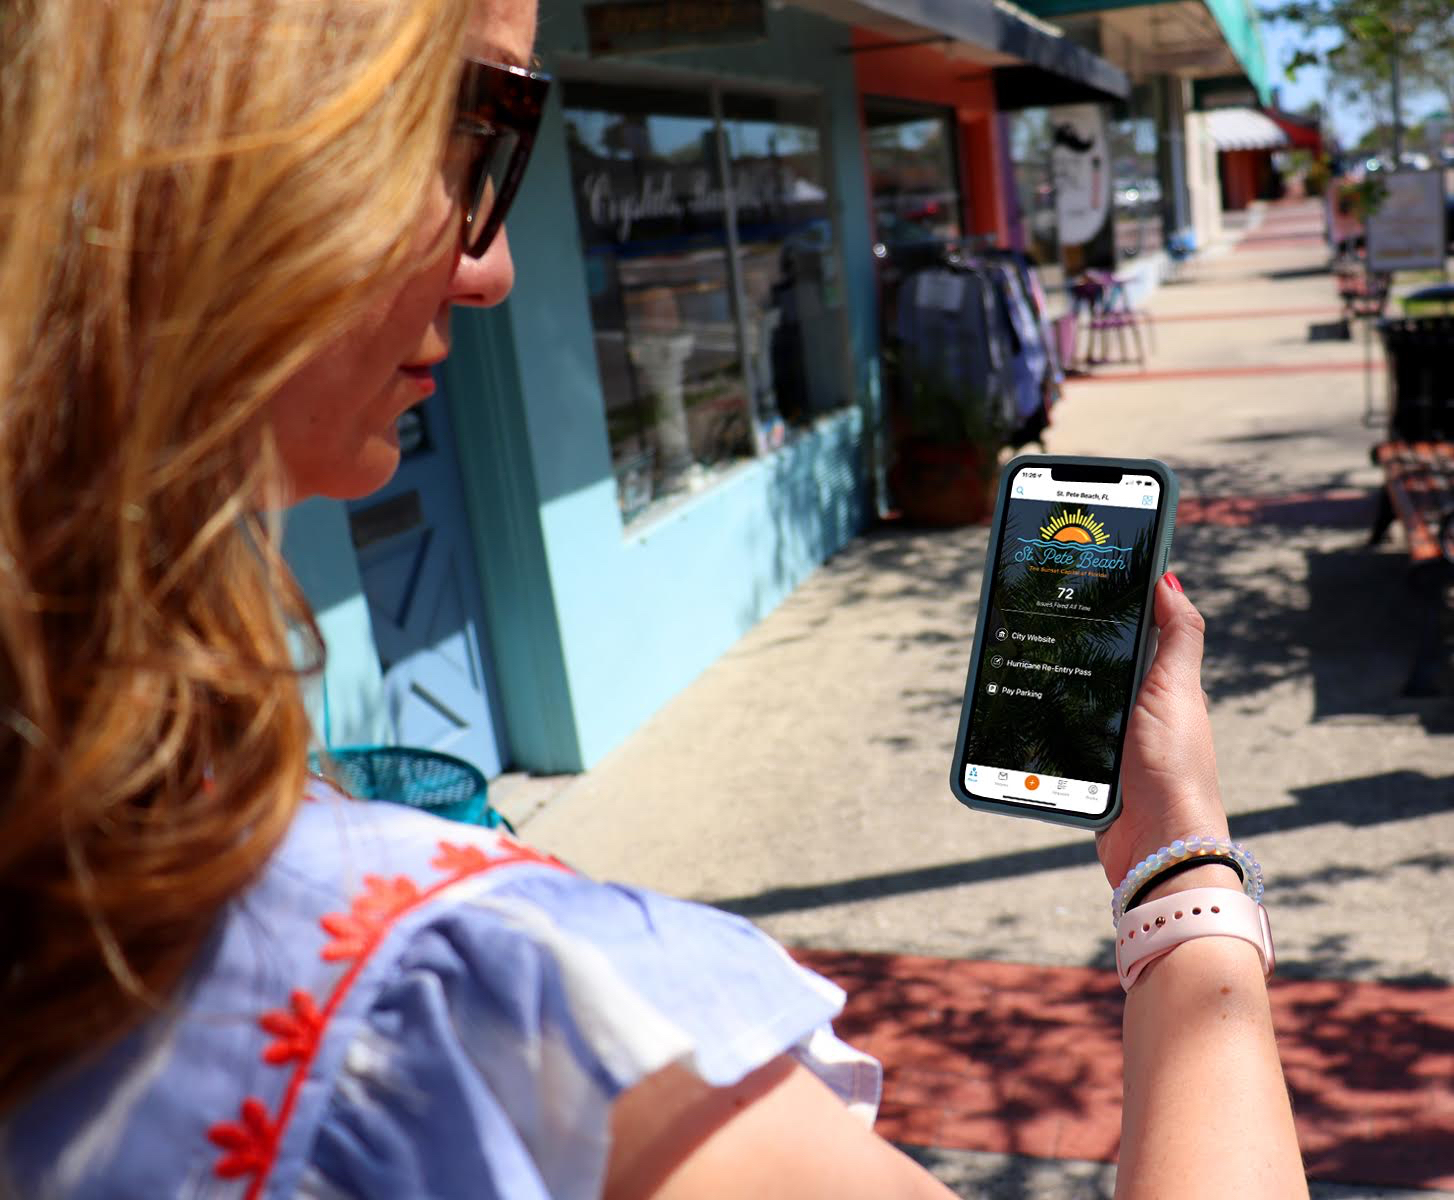 """A photo of a woman looking at a """"St. Pete Beach"""" app on her phone while walking  on a sidewalk"""